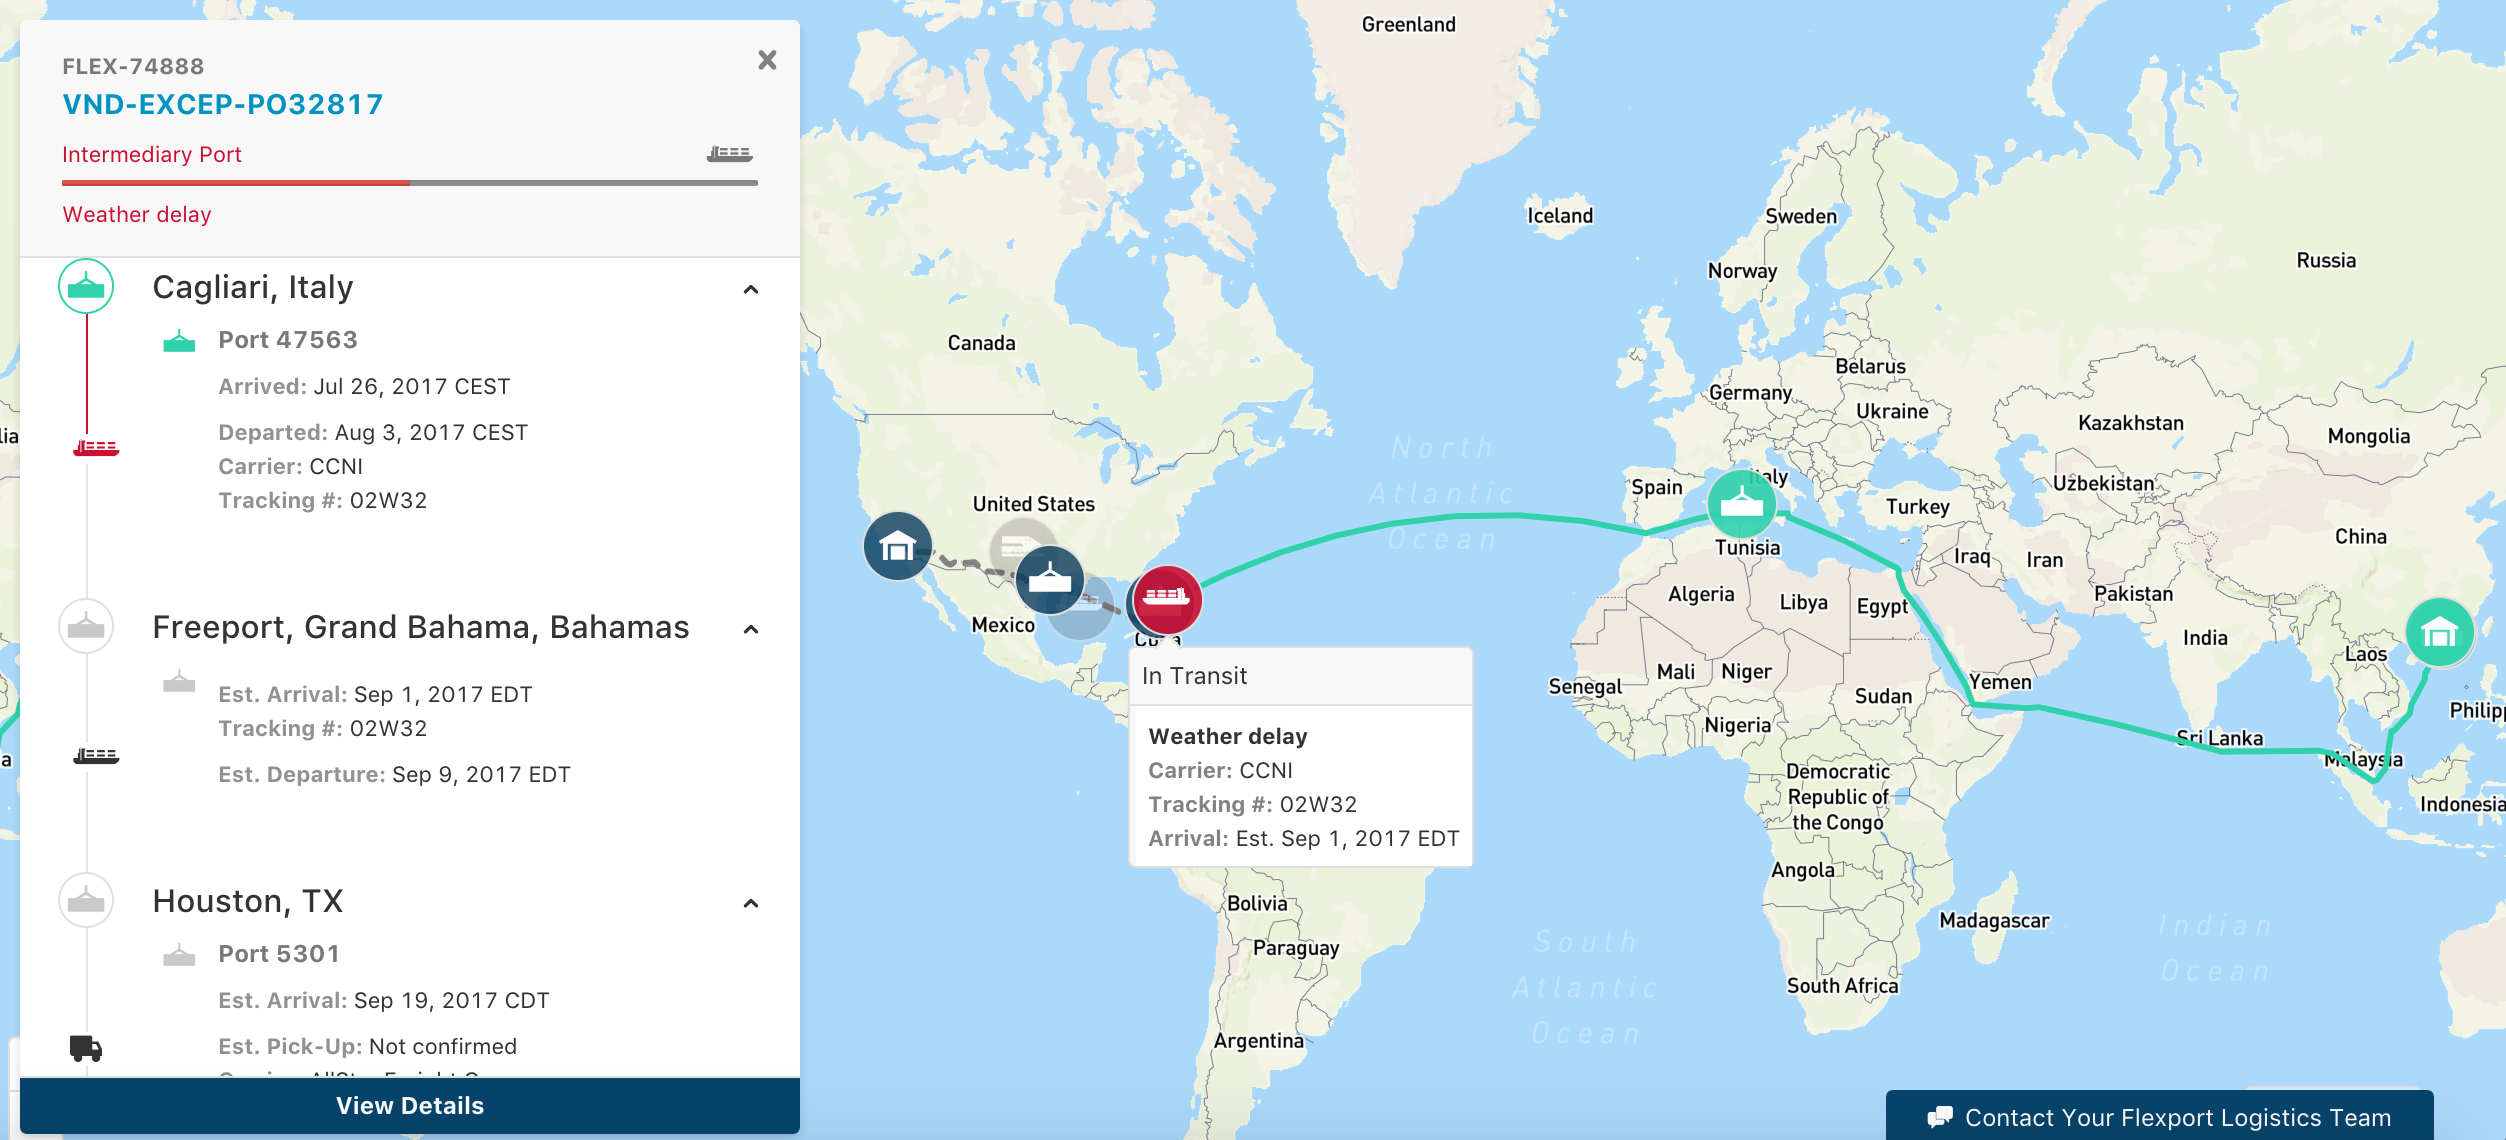 How Logistics Networks Respond to Natural Disasters - Flexport